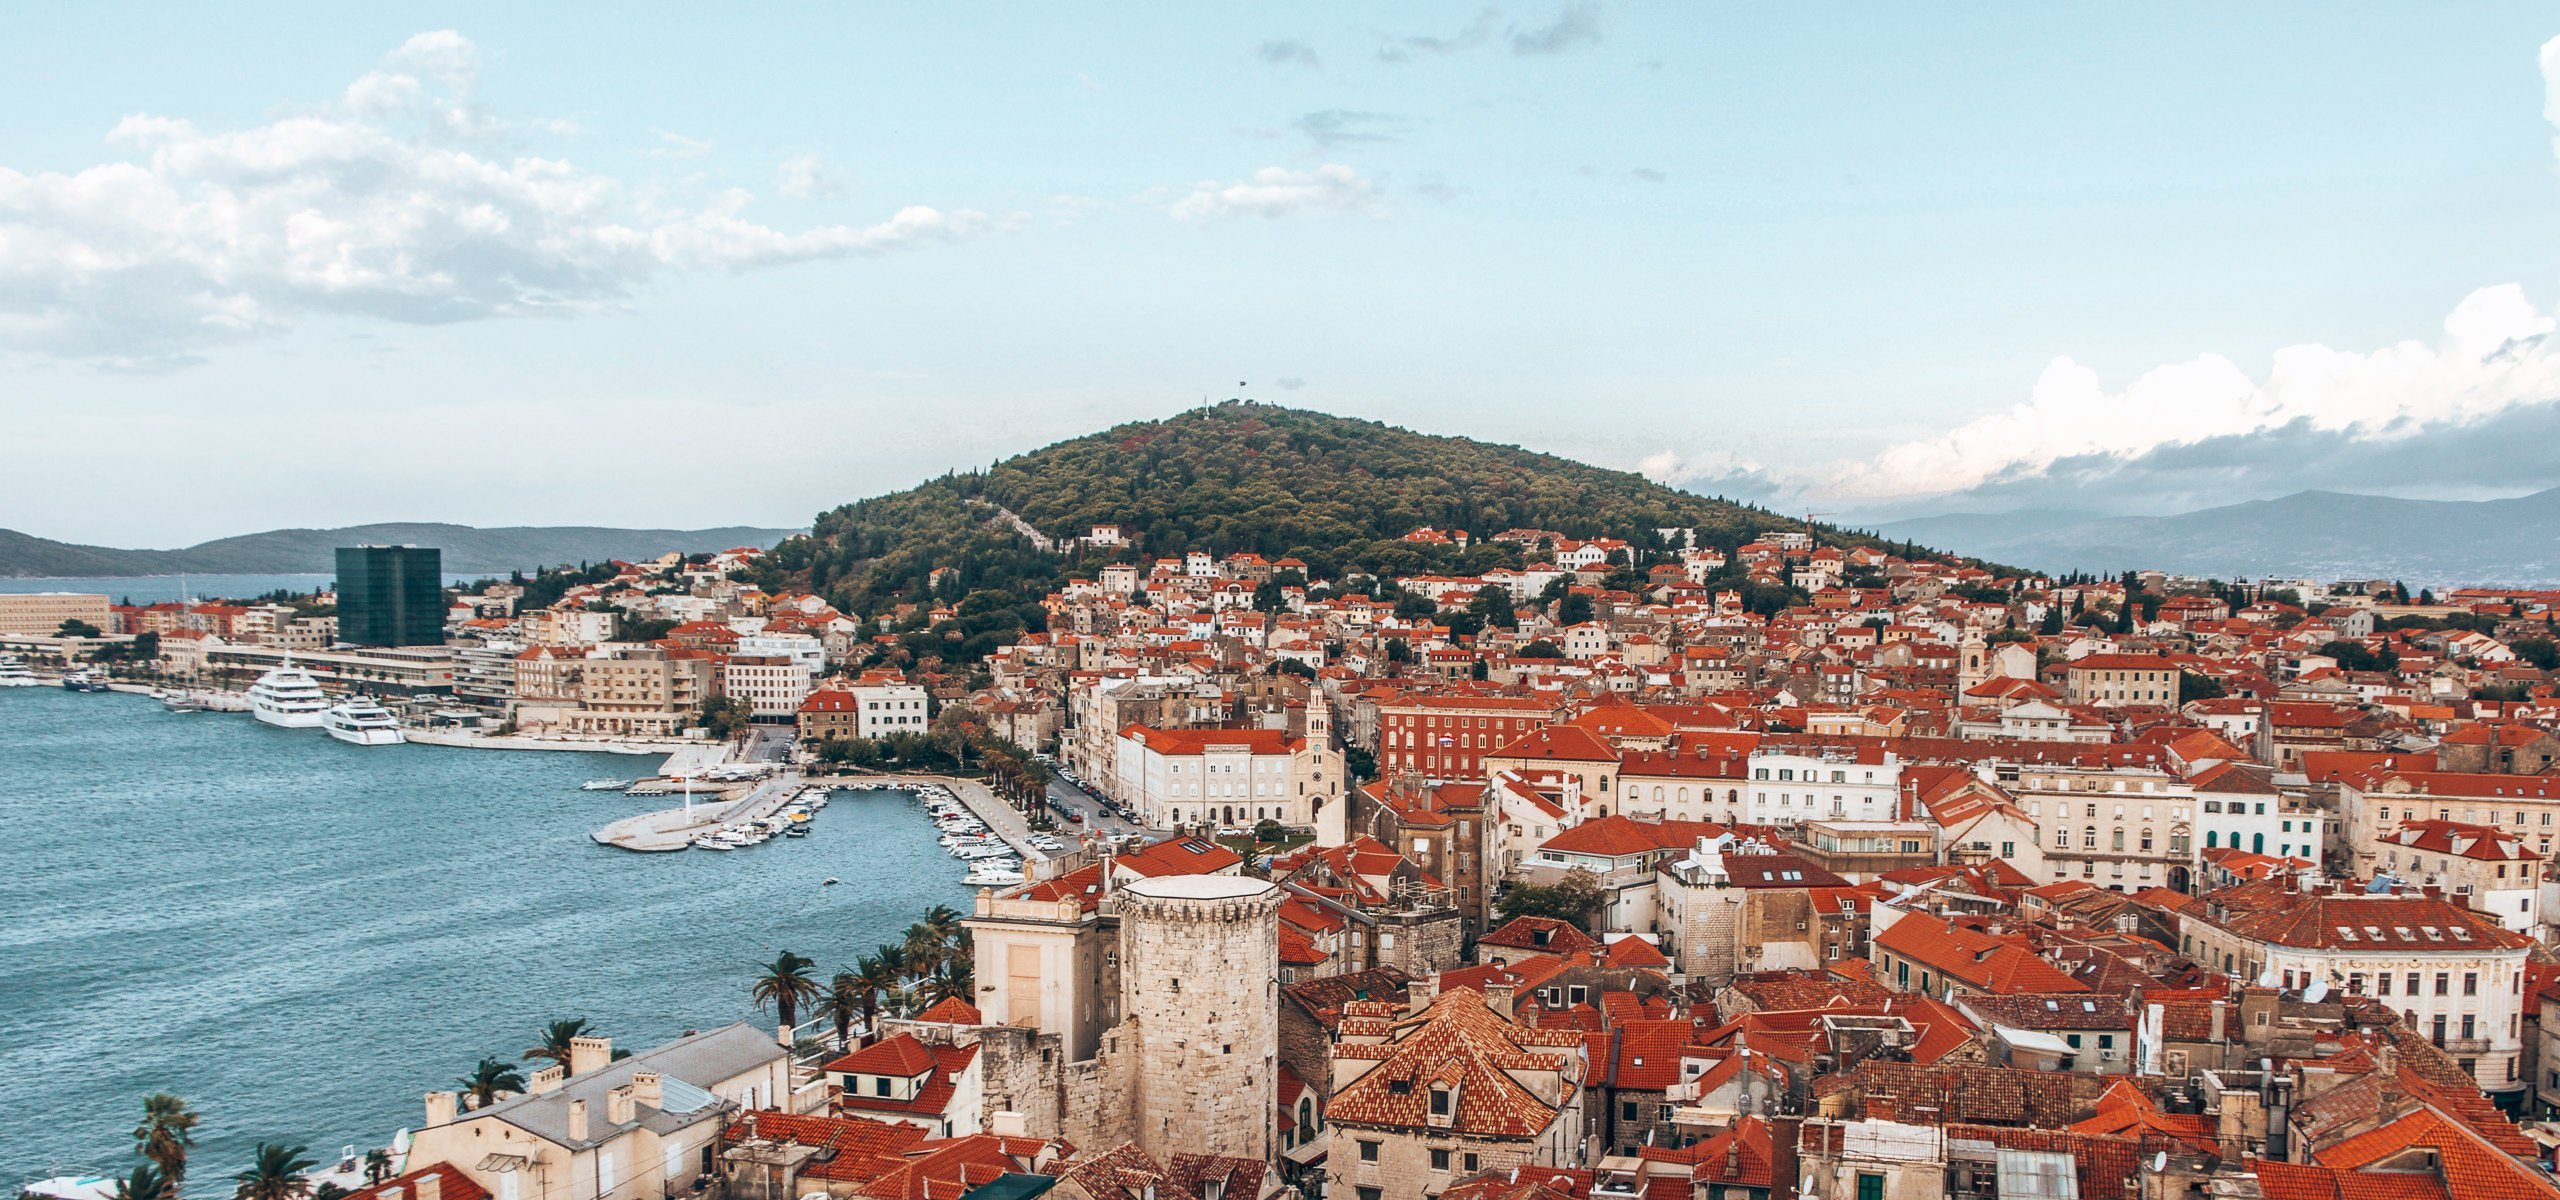 Birds eye view of the red roofs of Split and the harbour in Split, Croatia